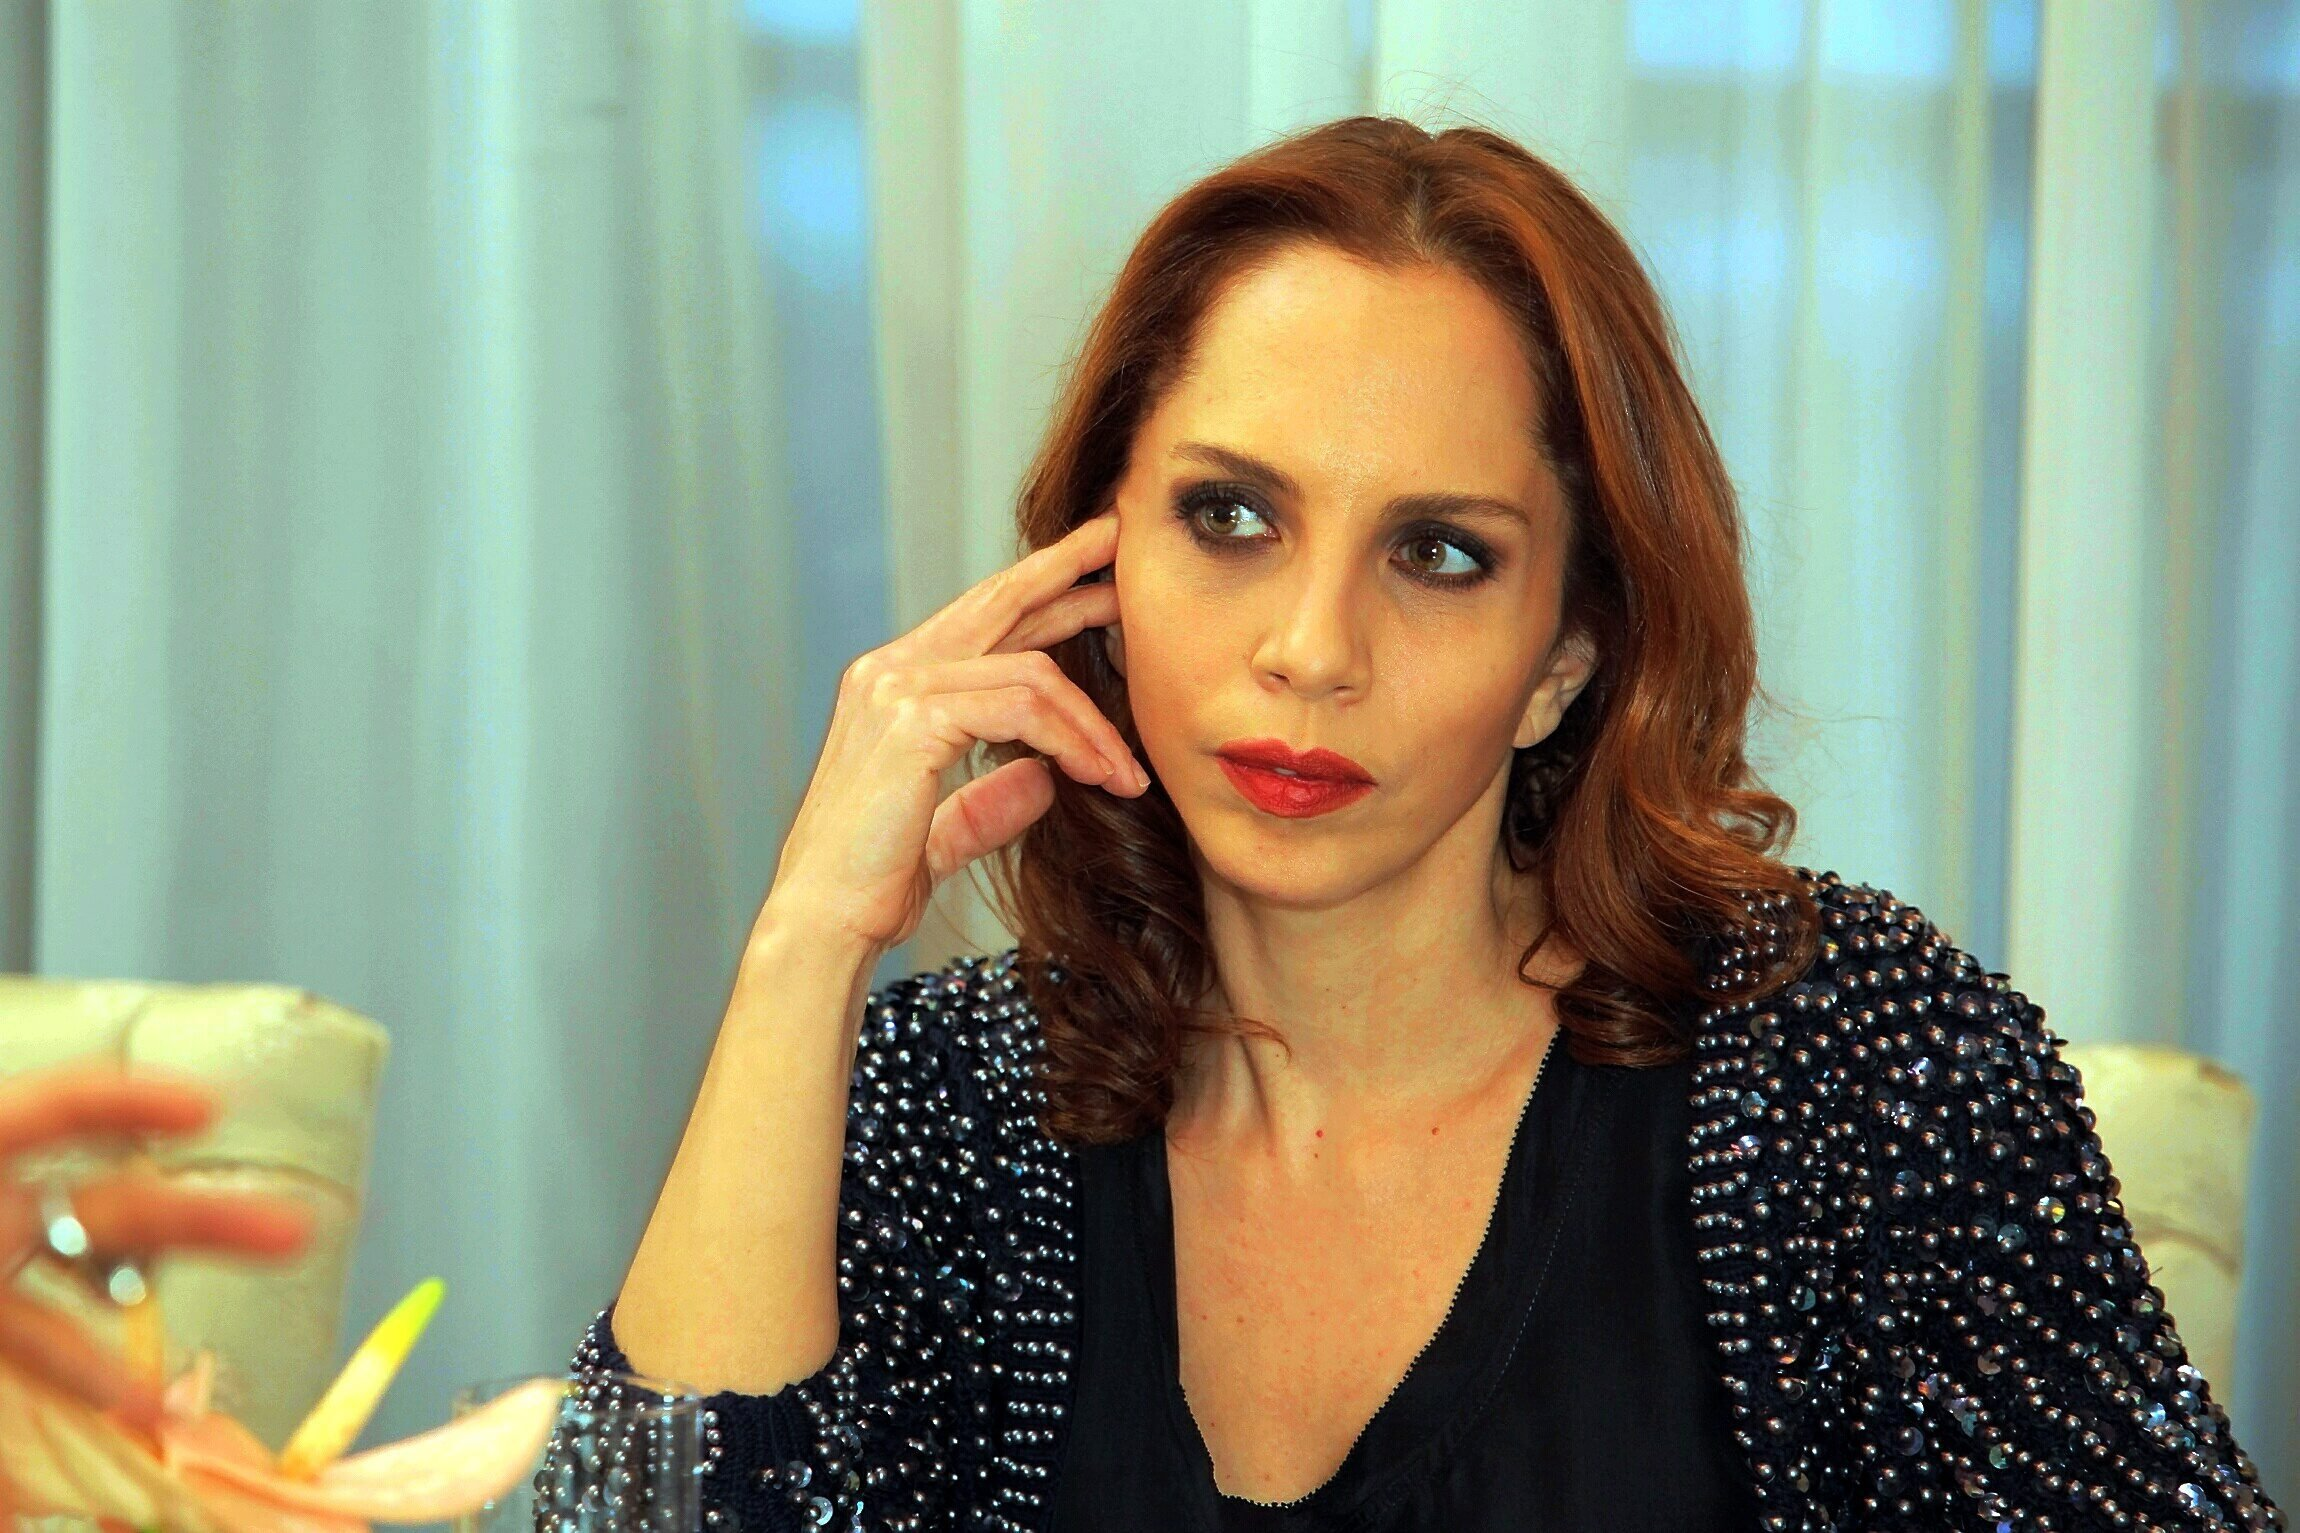 Sertab Erener sits for an interview in Istanbul. (Photo by Erkan Sevenler)